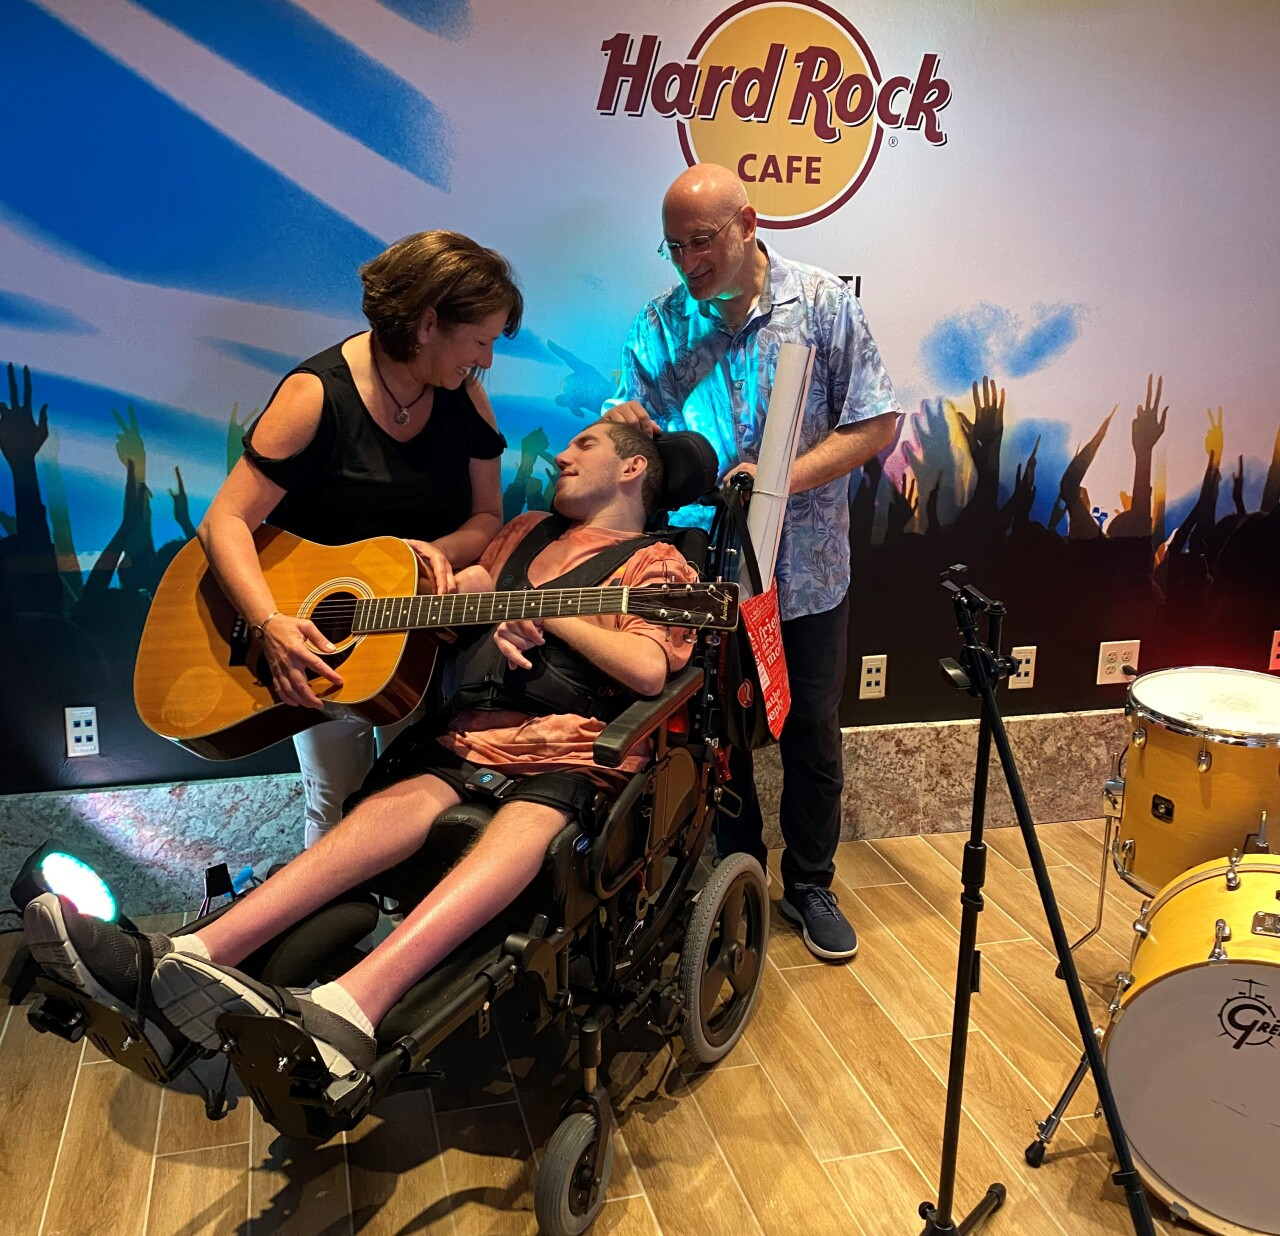 In this photo, Alexia Kadish is holding a guitar near her son, Ethan, who is seated in his wheelchair. Scott Kadish, Ethan's dad, is standing behind Ethan holding the wheelchair.